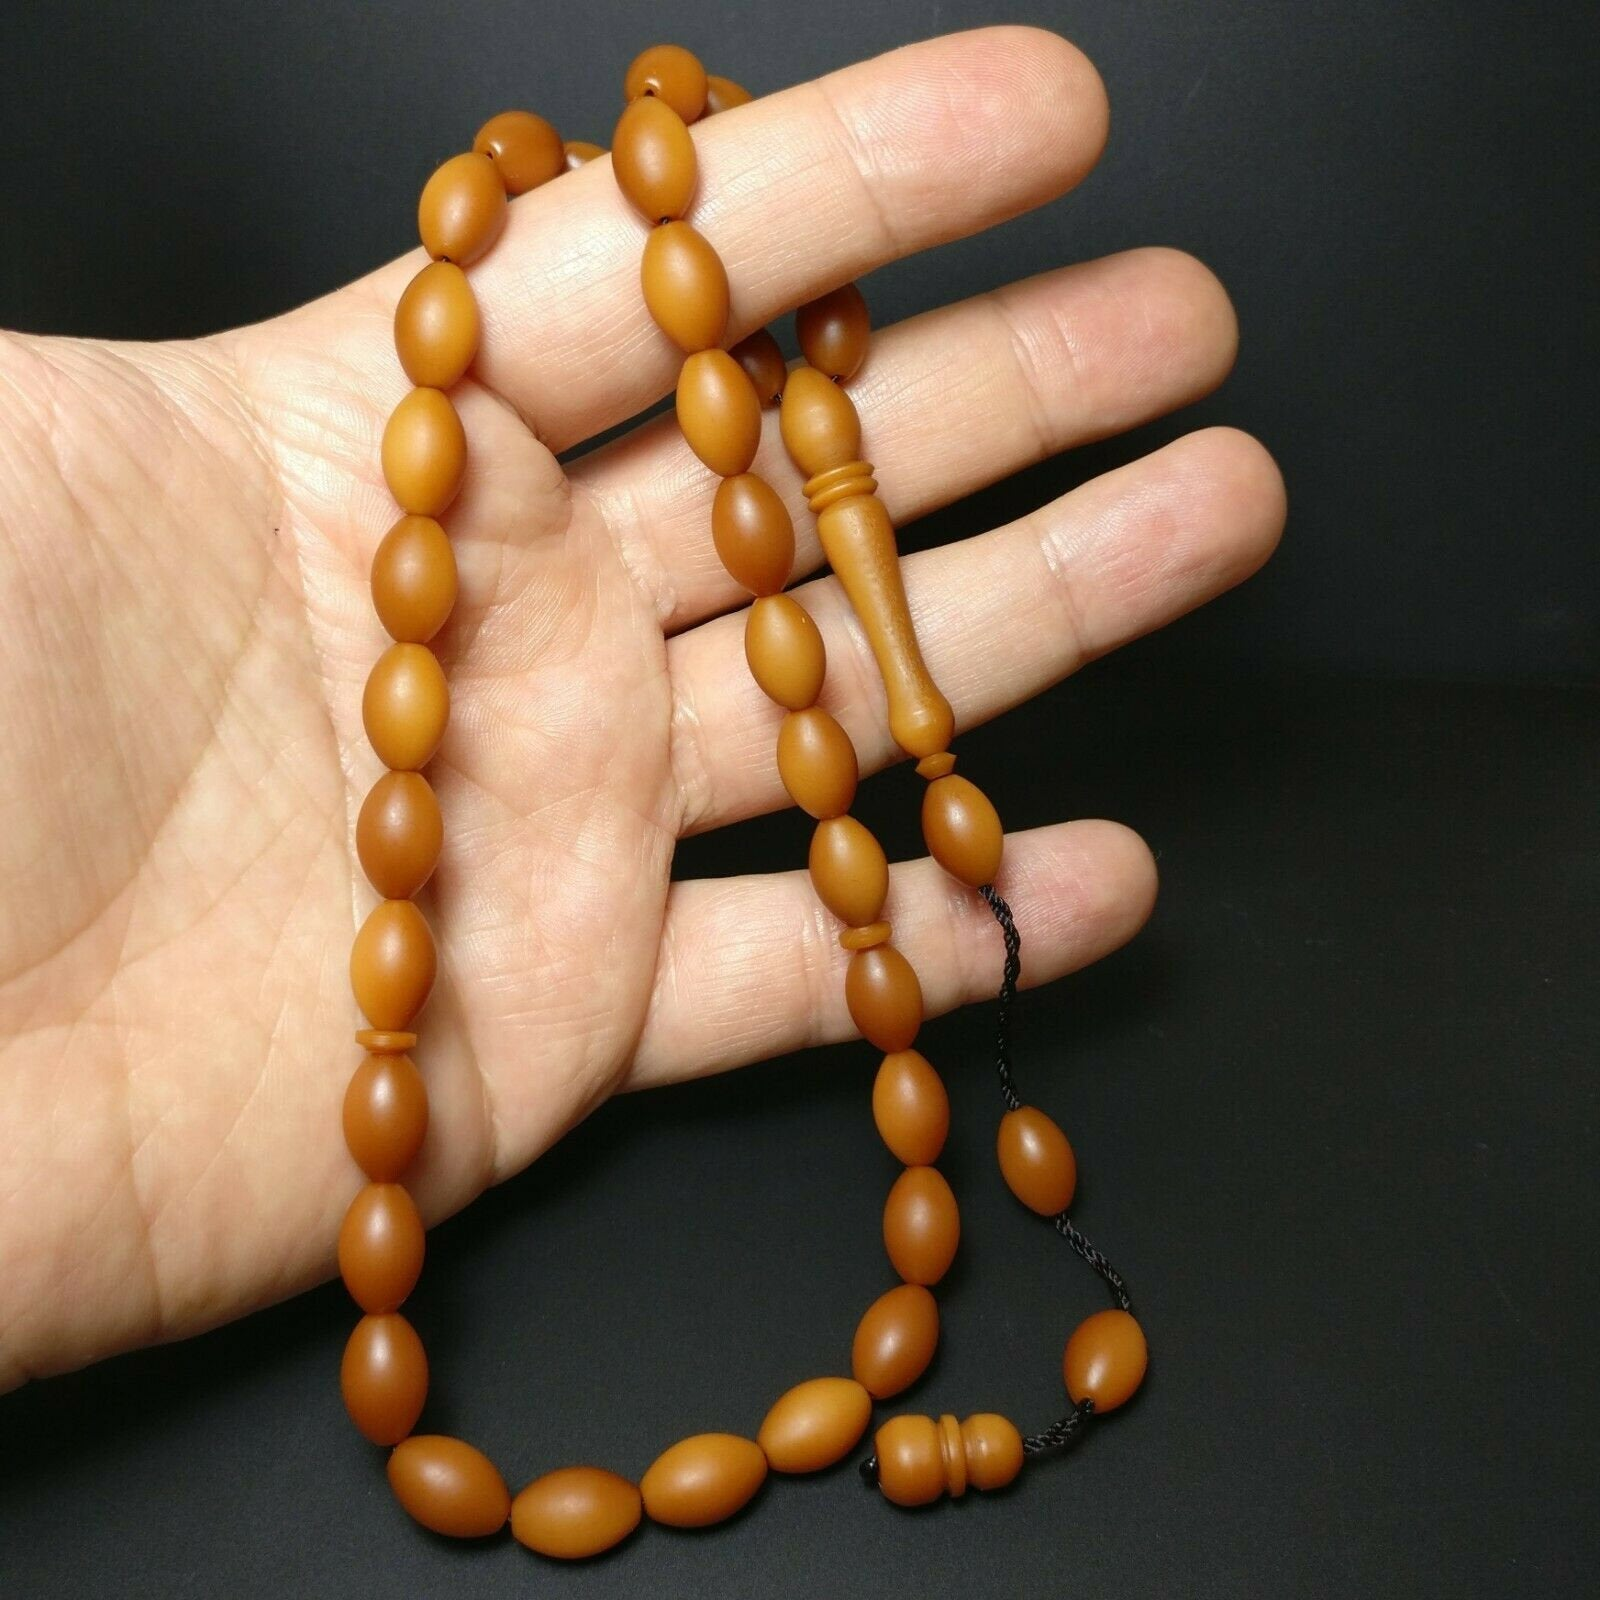 Prayer Beads from German Fiber, Alman Fiber Tesbih Muslim Islam Tasbih Subha 233